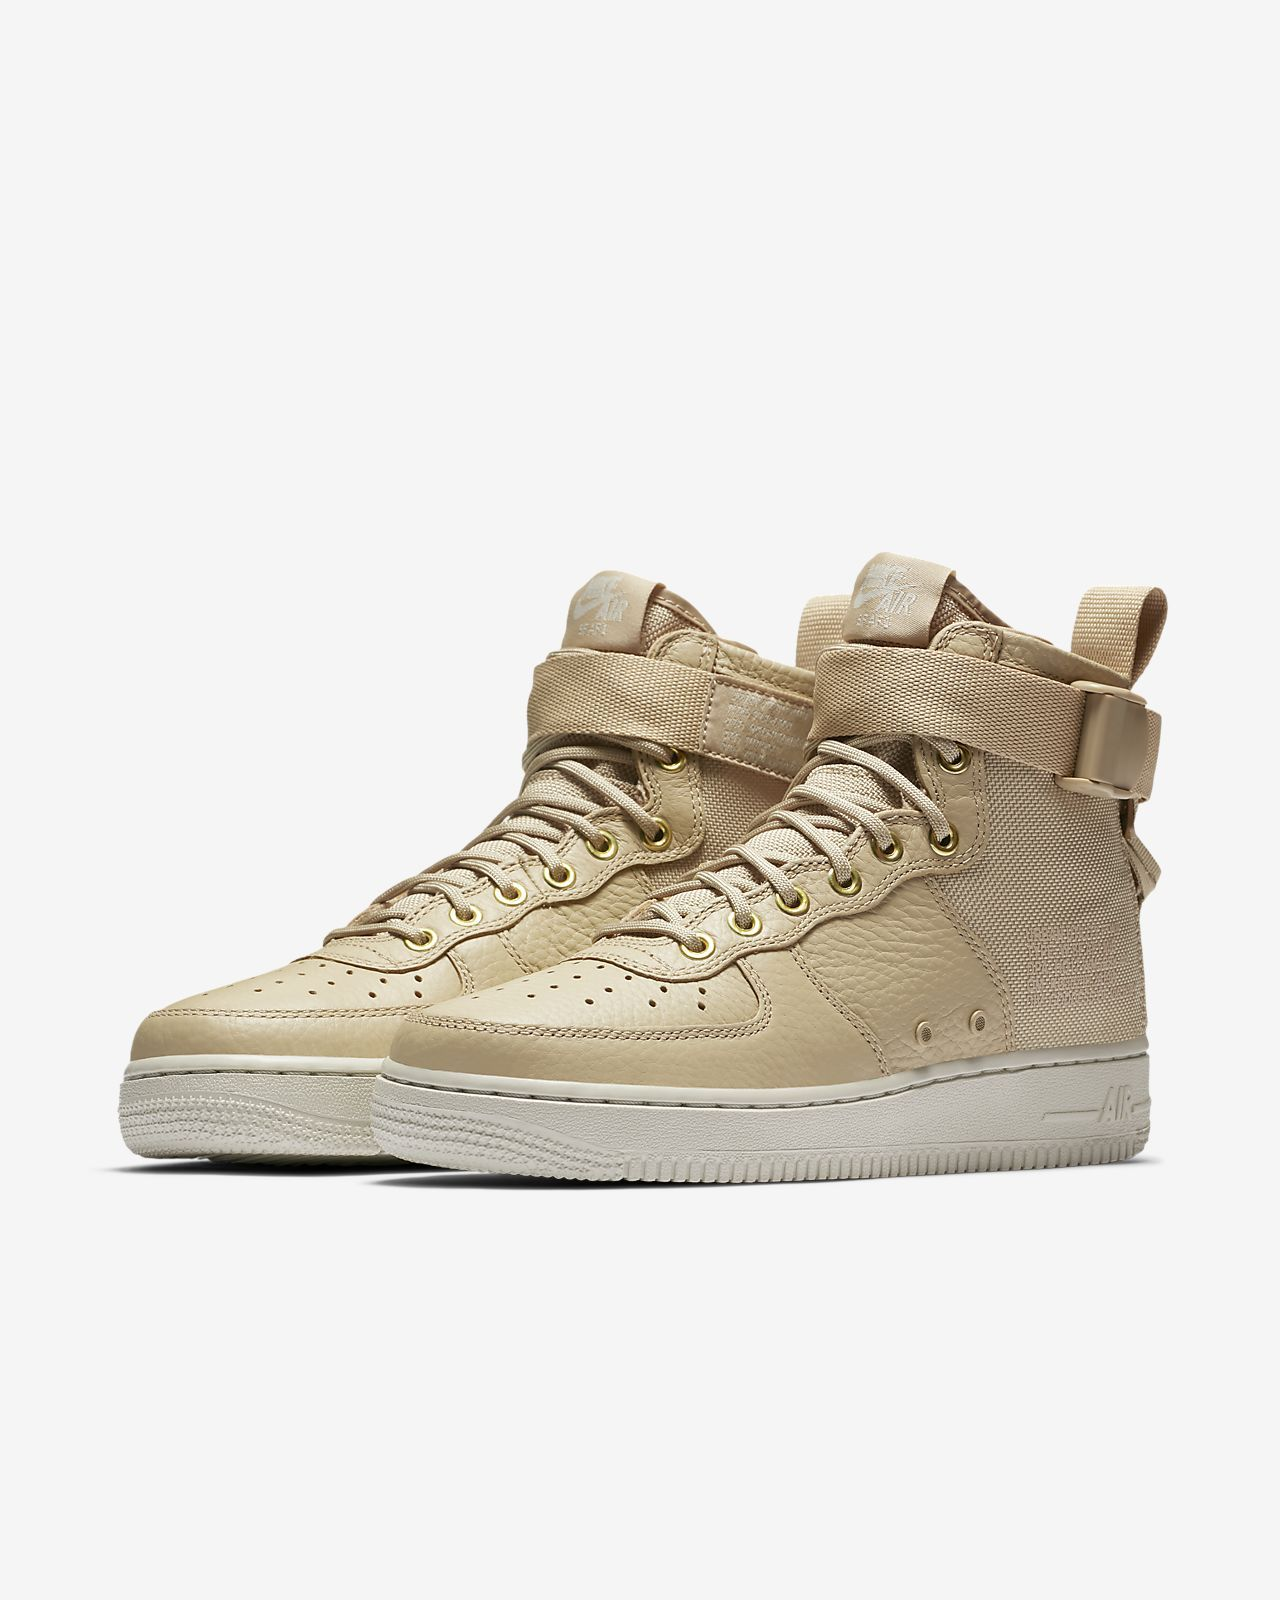 Nike Air Force 1 Sf Mid WoHombres Boot Aire I Luv Zapatos Pinterest Aire Boot 12a623